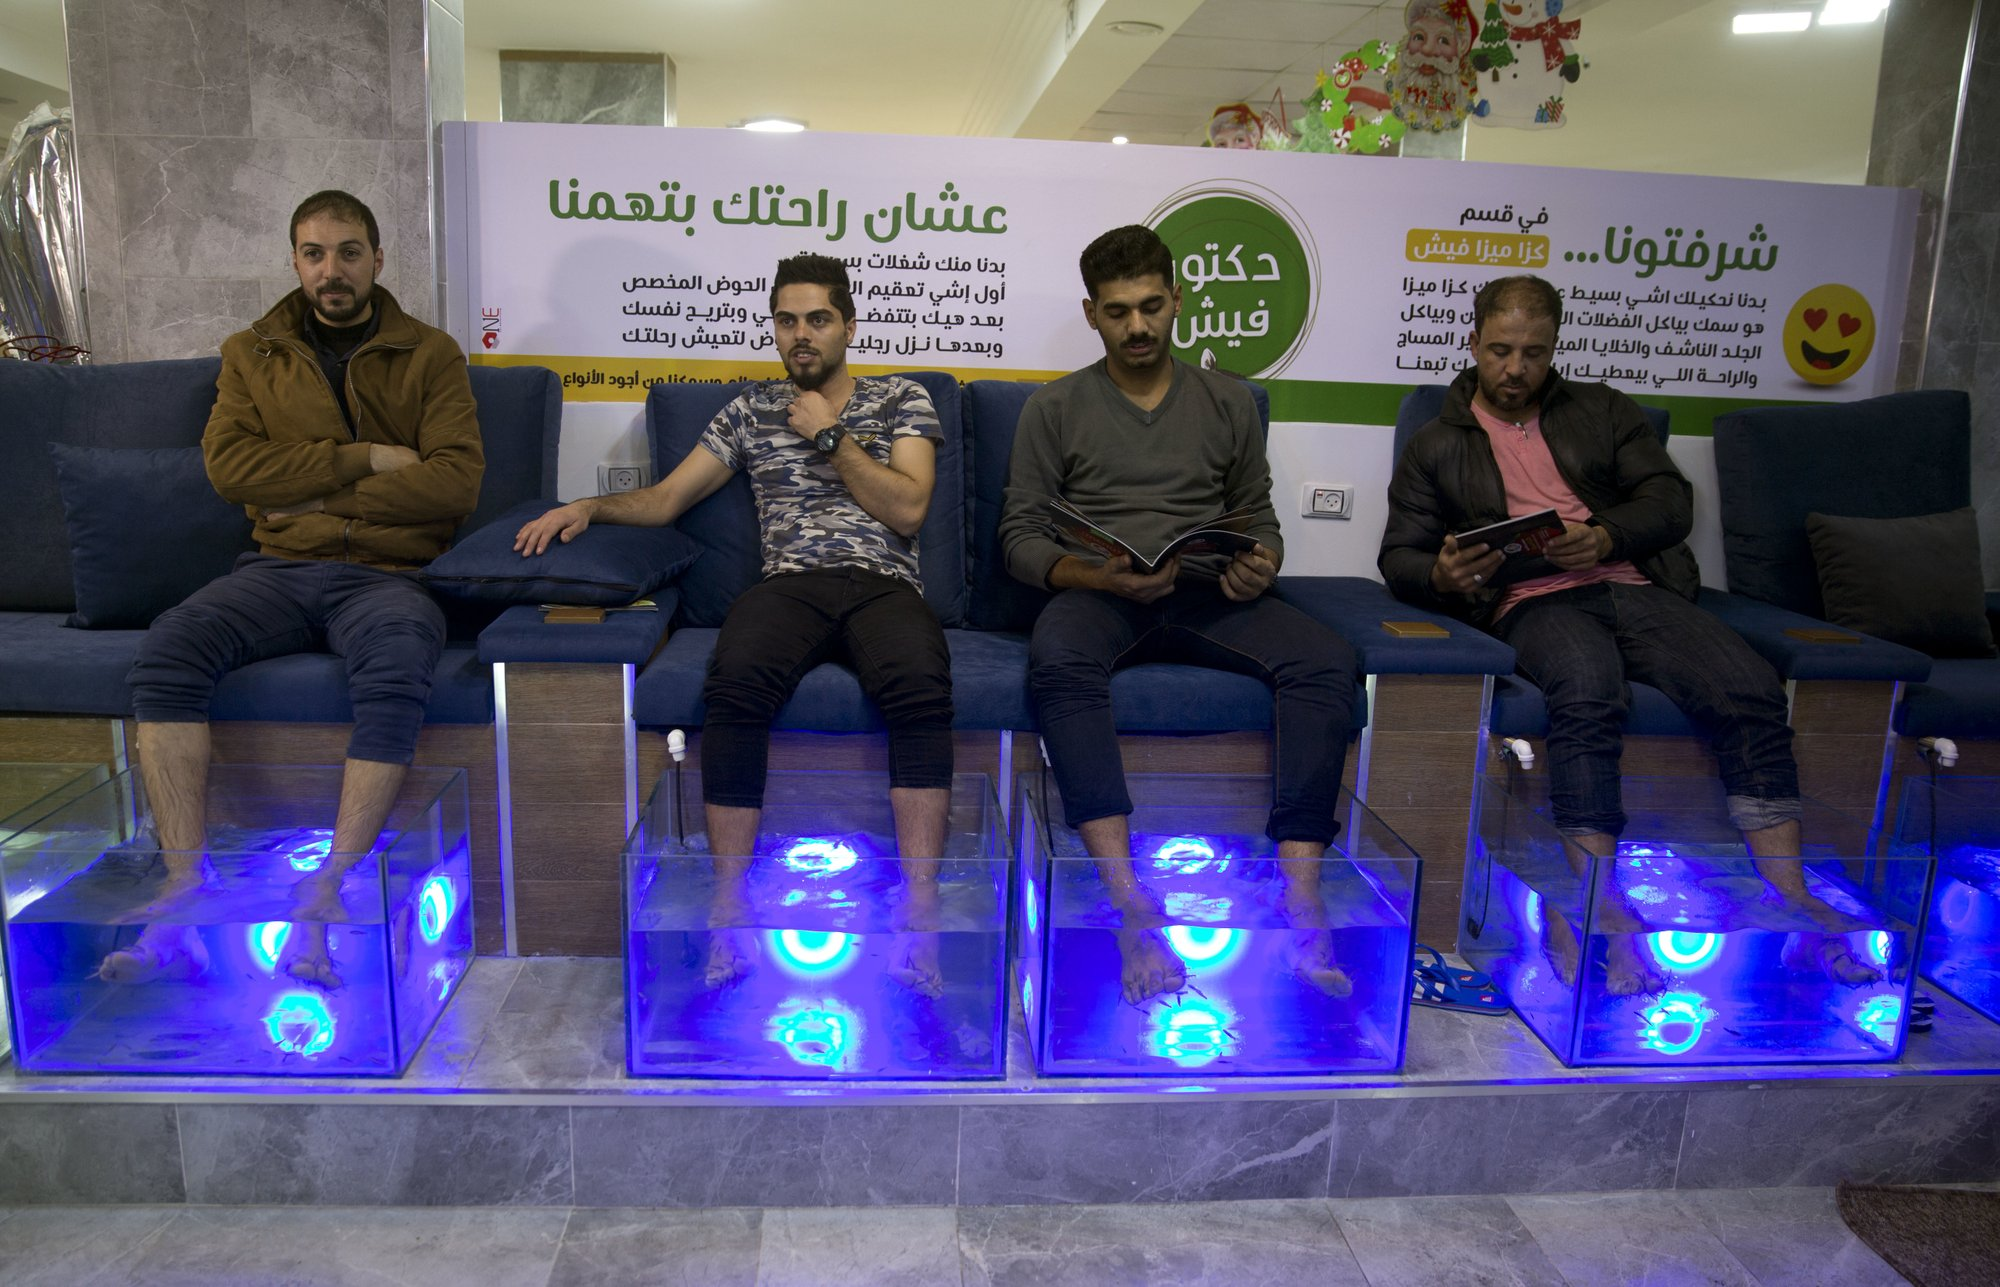 Palestinians soak their feet in tank stocked with fish at a cafe in Gaza City, December 26, 2018